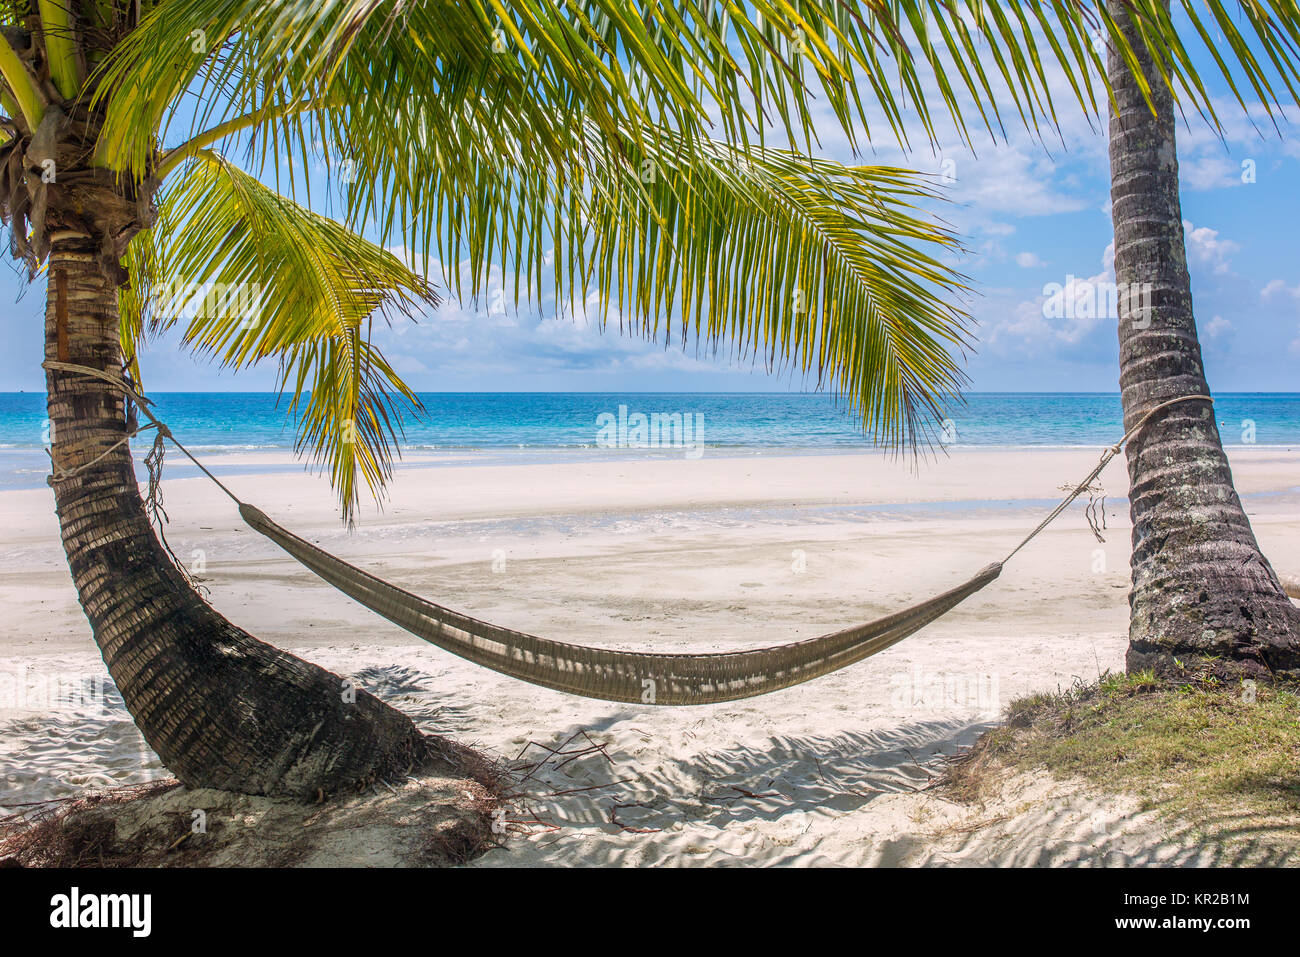 Empty hammock between palm trees on tropical beach in Thailand Stock Photo